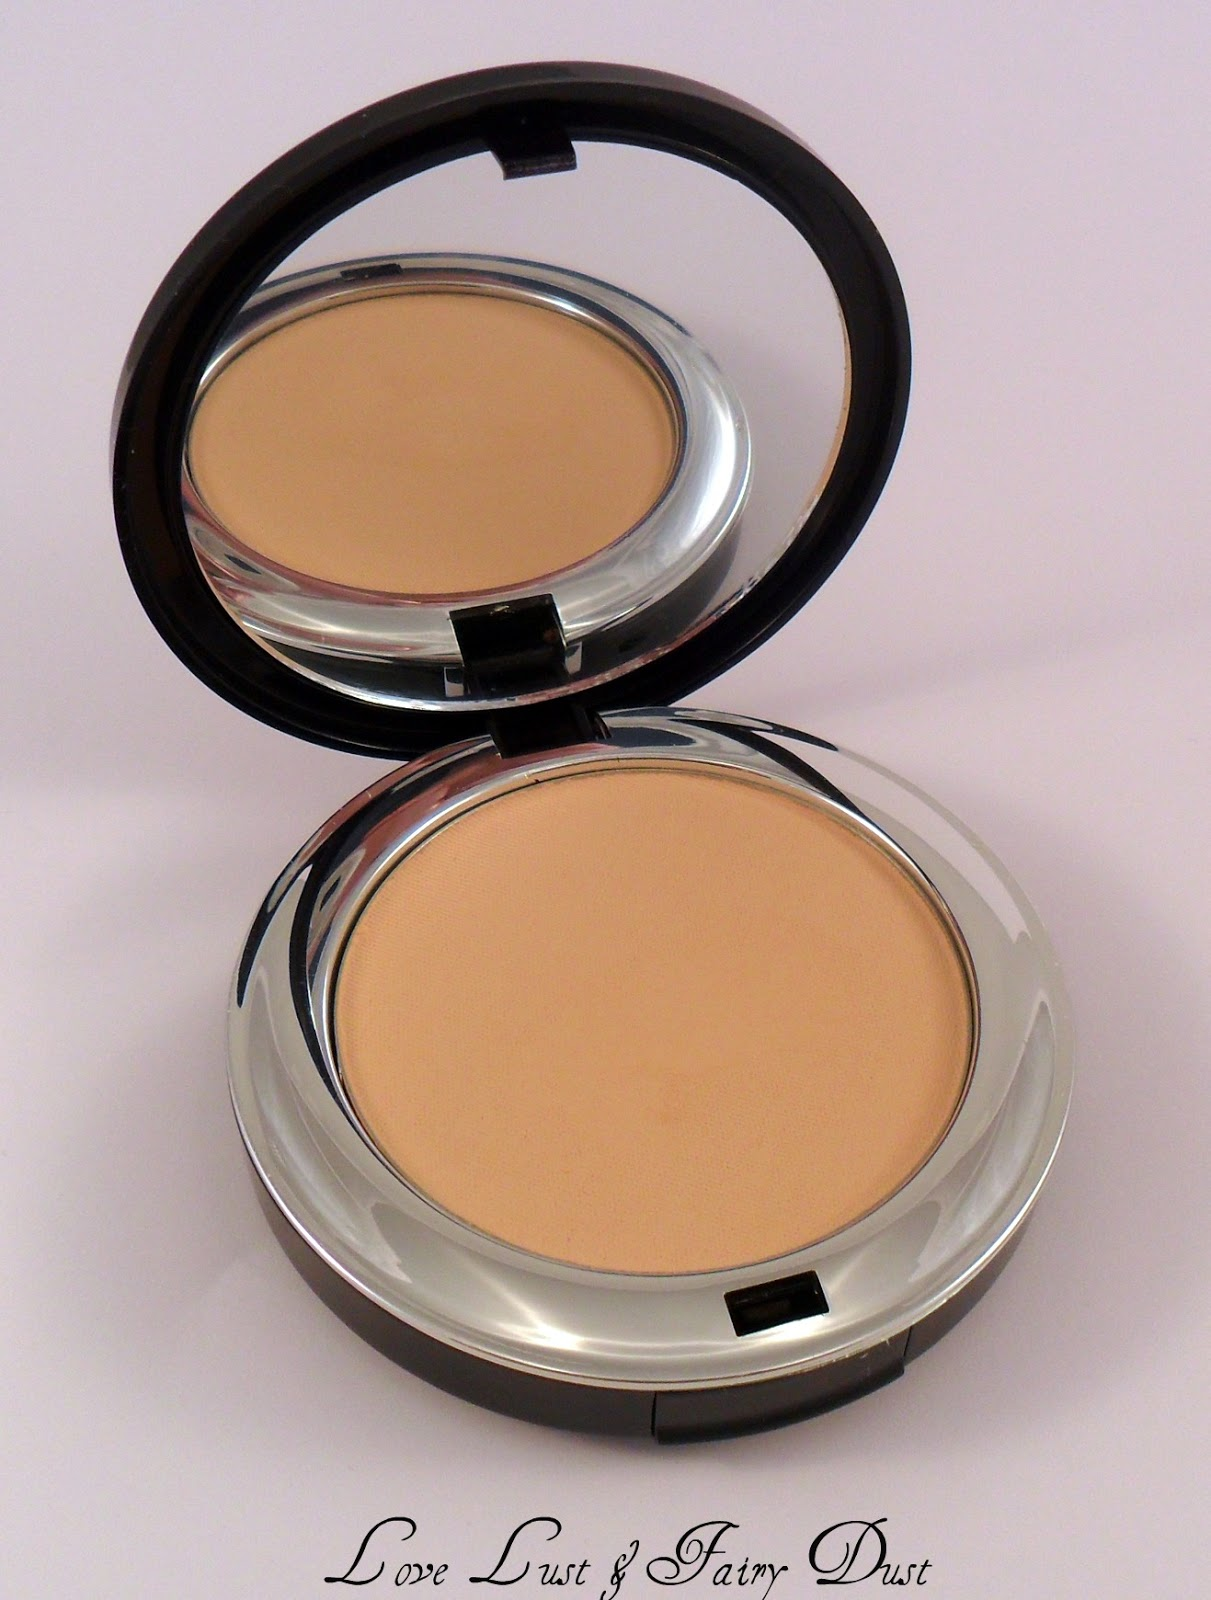 Bellápierre Compact Mineral Foundation review